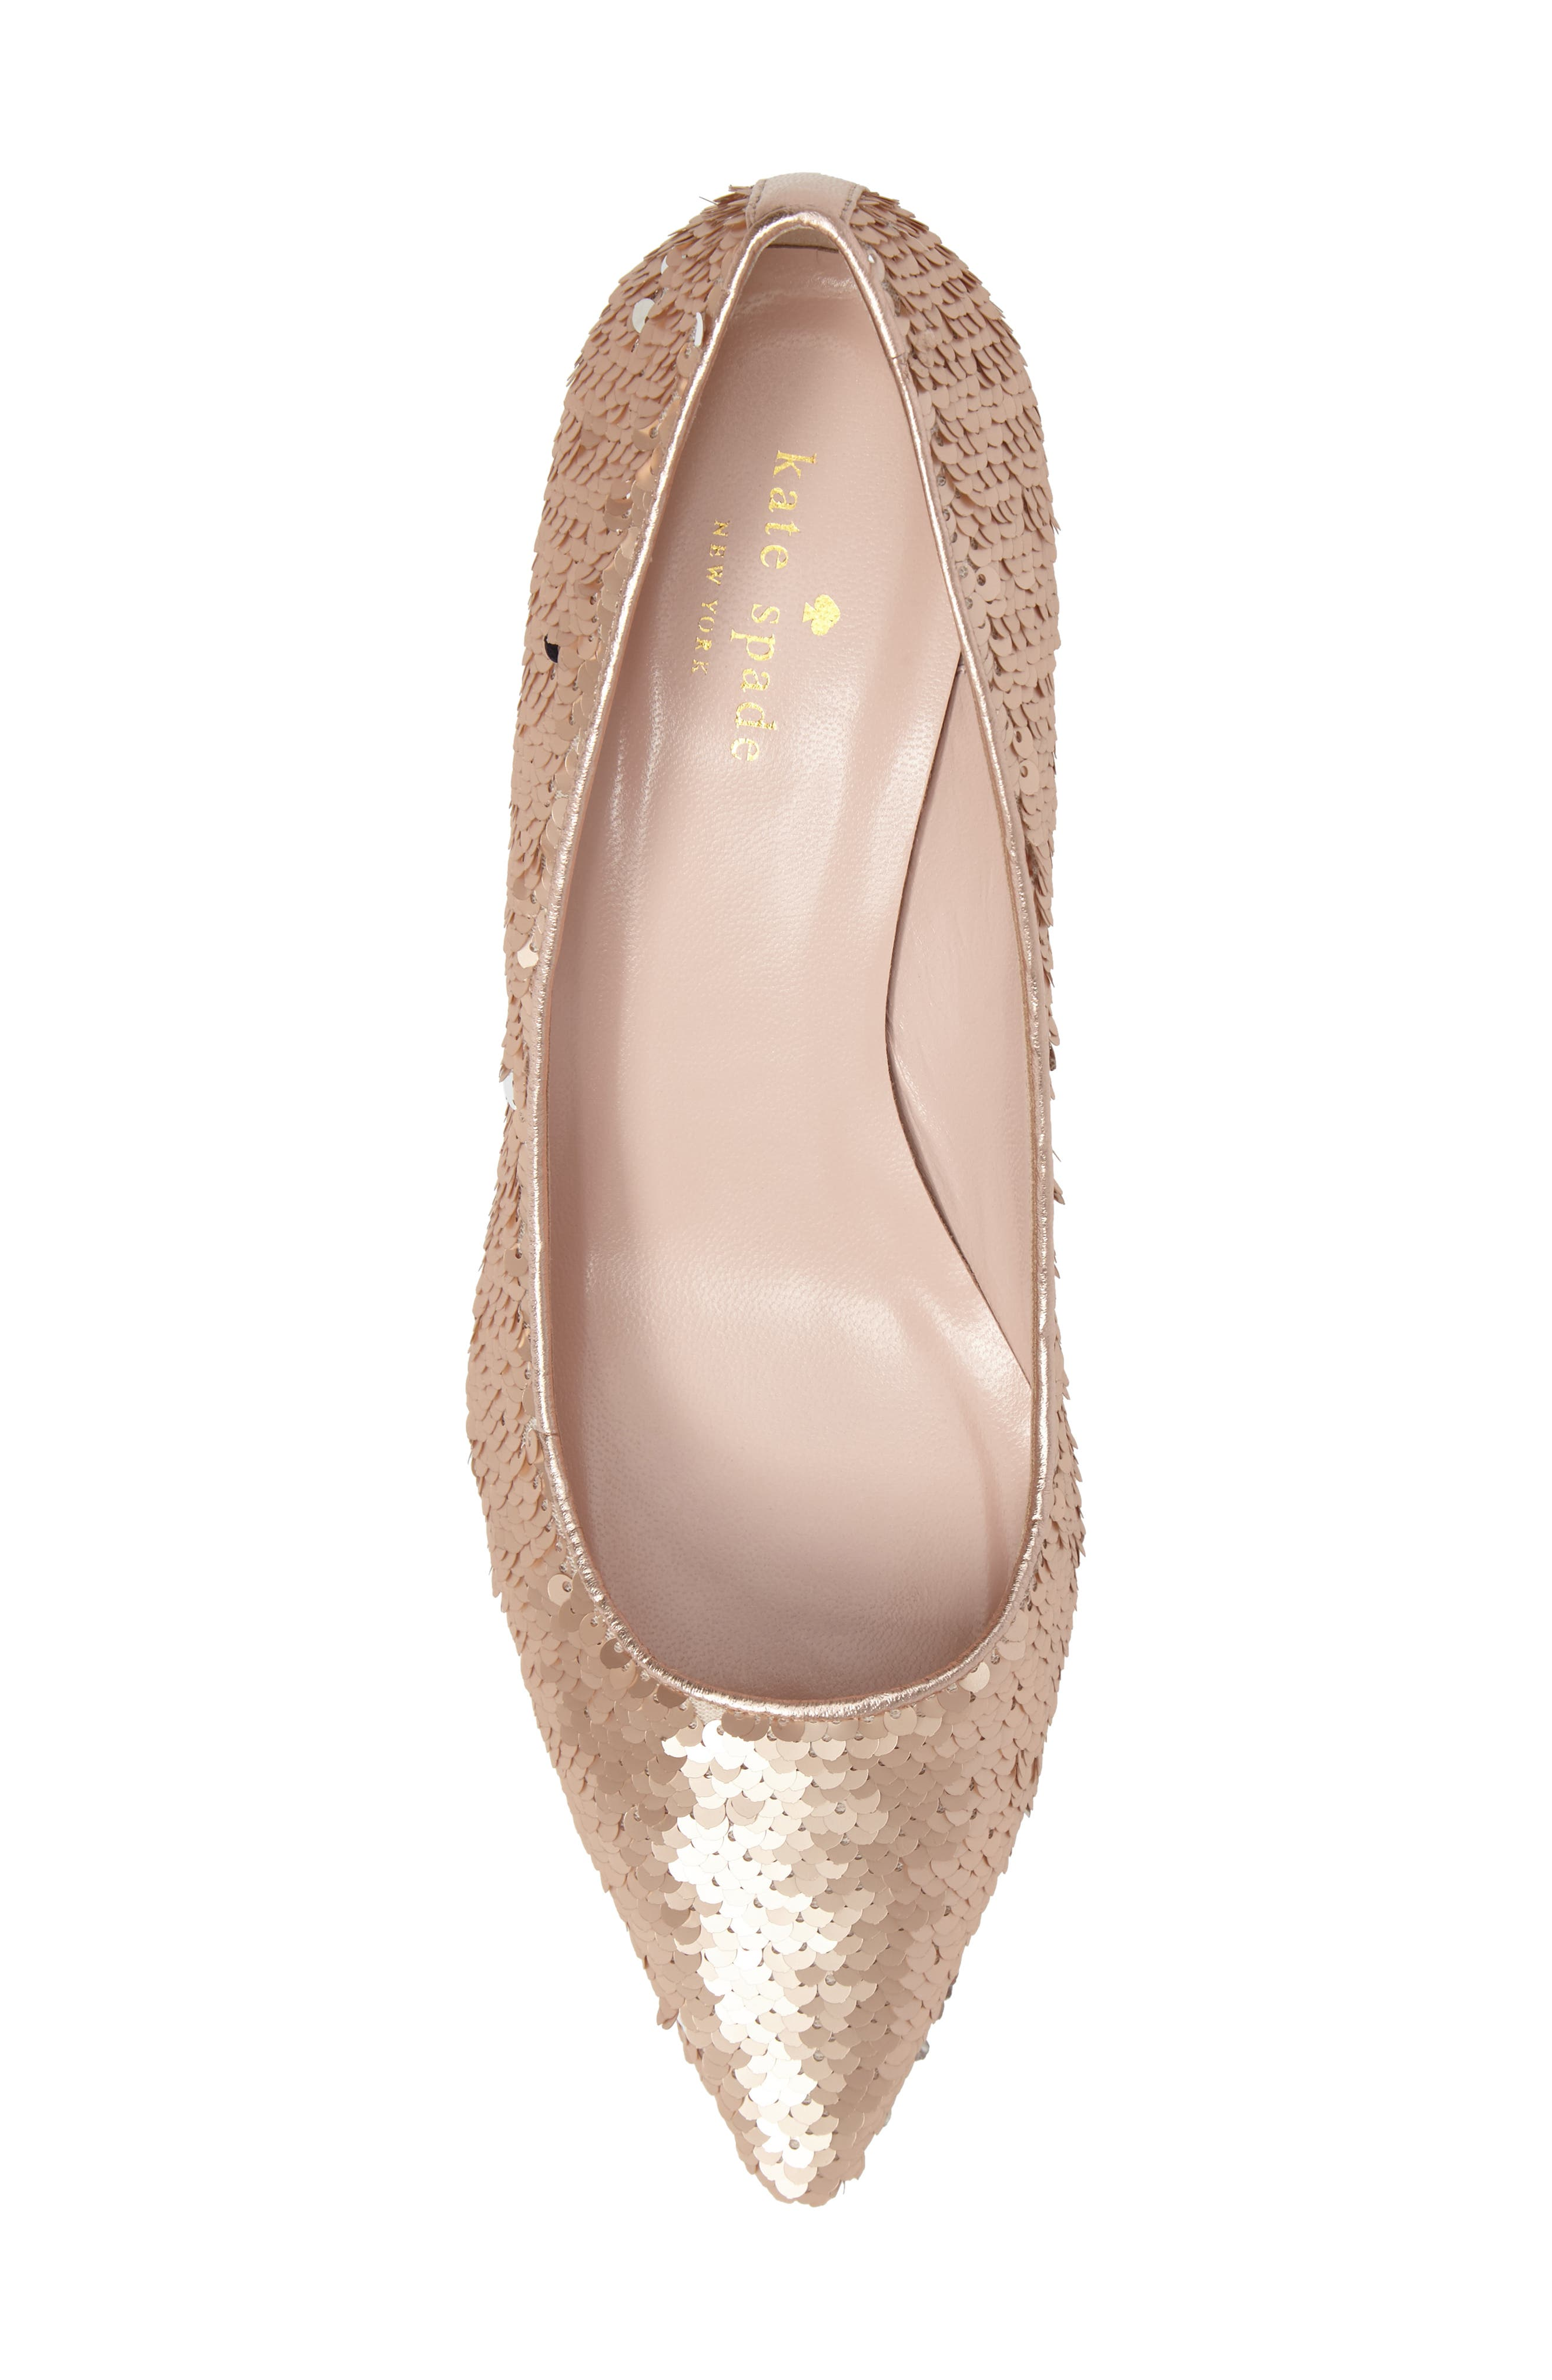 mauna sequin pump,                             Alternate thumbnail 12, color,